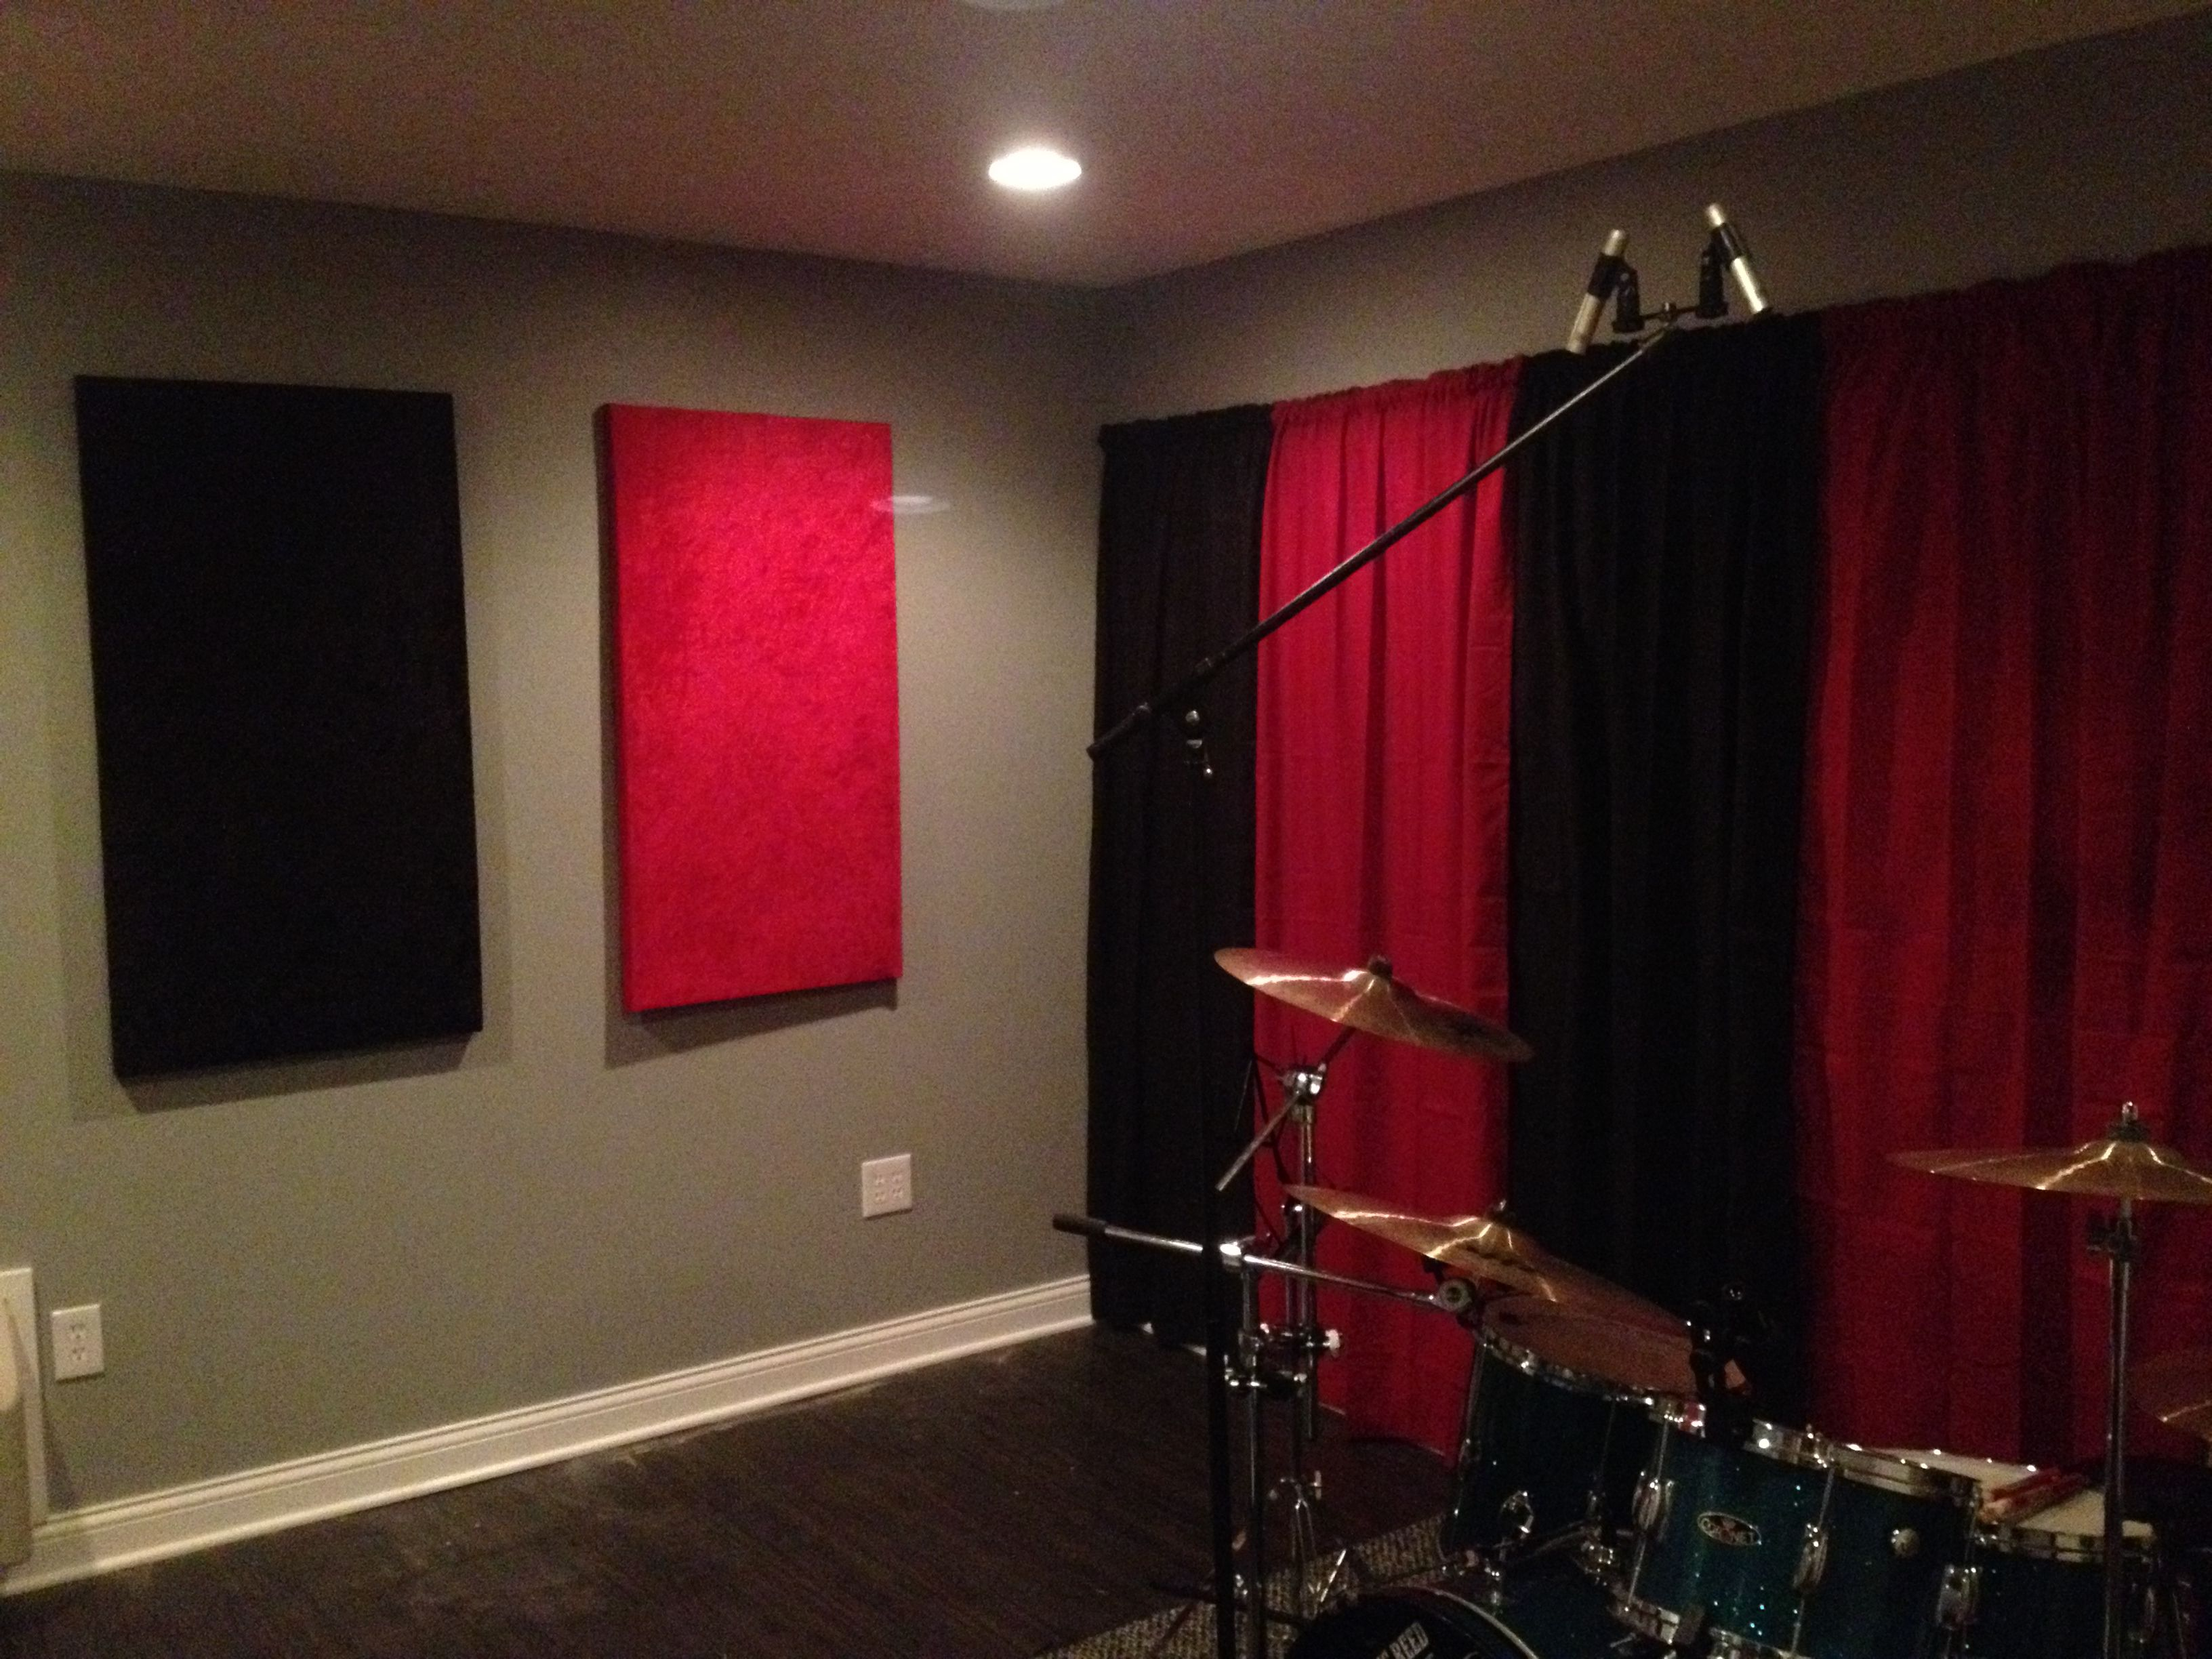 Diy Sound Proof Panels Step By Step Music Studio Room Soundproof Panels Studio Room